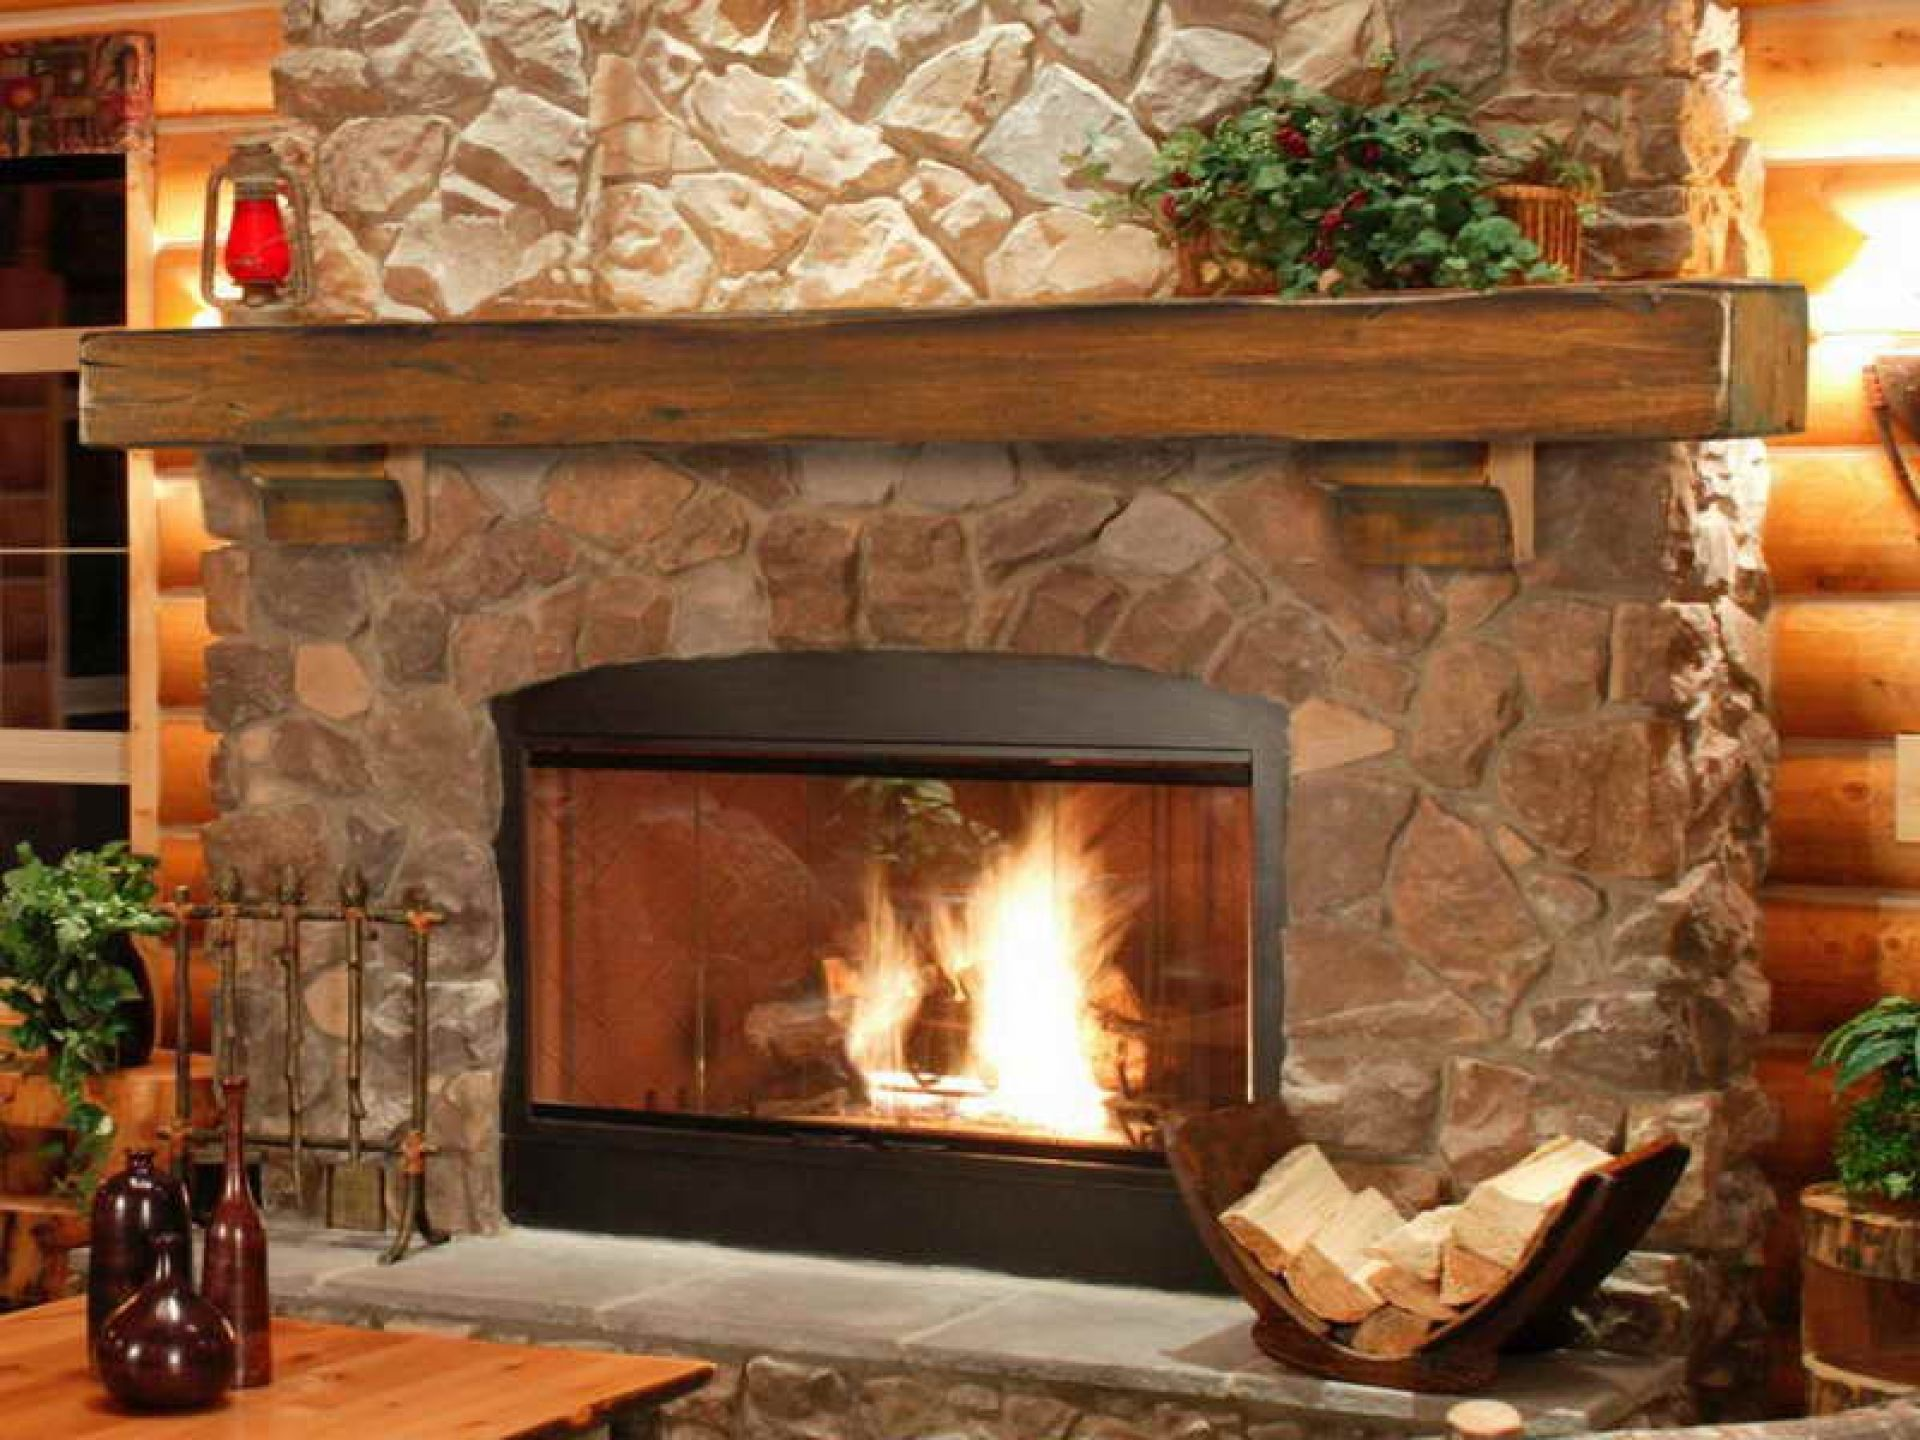 Natural Stone For Fireplace cool stone fireplace mantels for interior design: natural stone